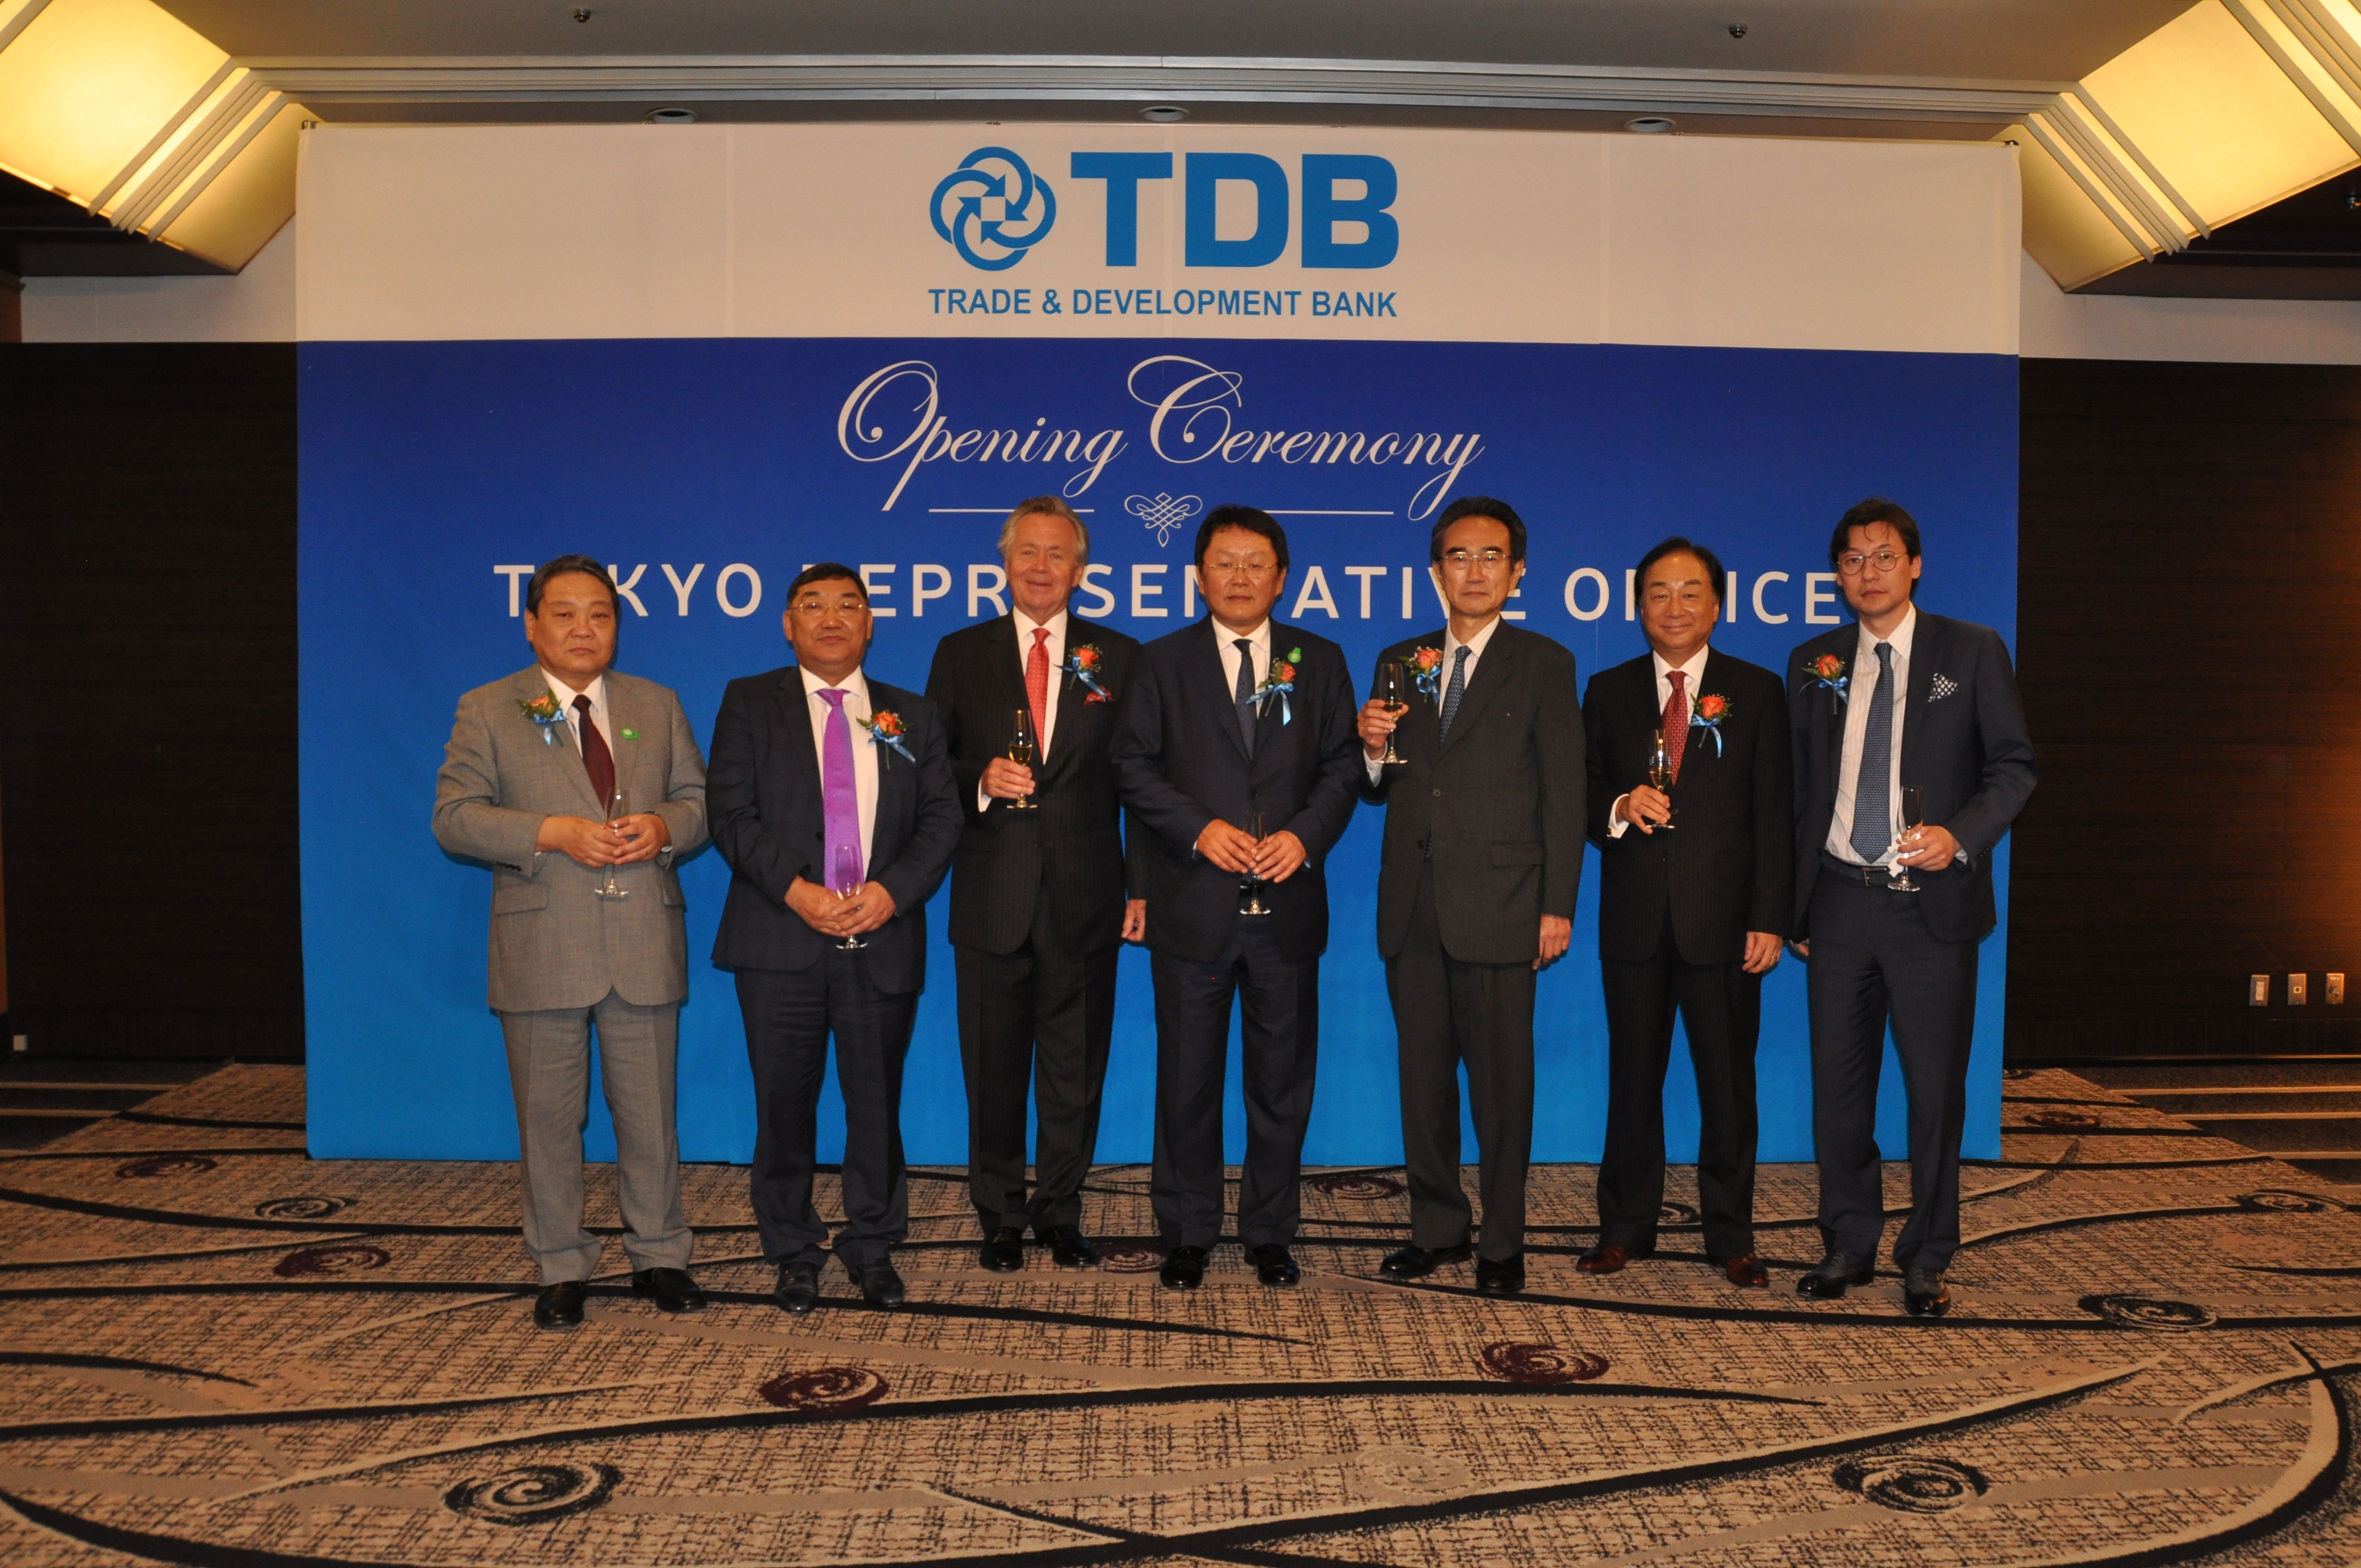 TDB HAS OPENED ITS FIRST INTERNATIONAL REPRESENTATIVE OFFICE